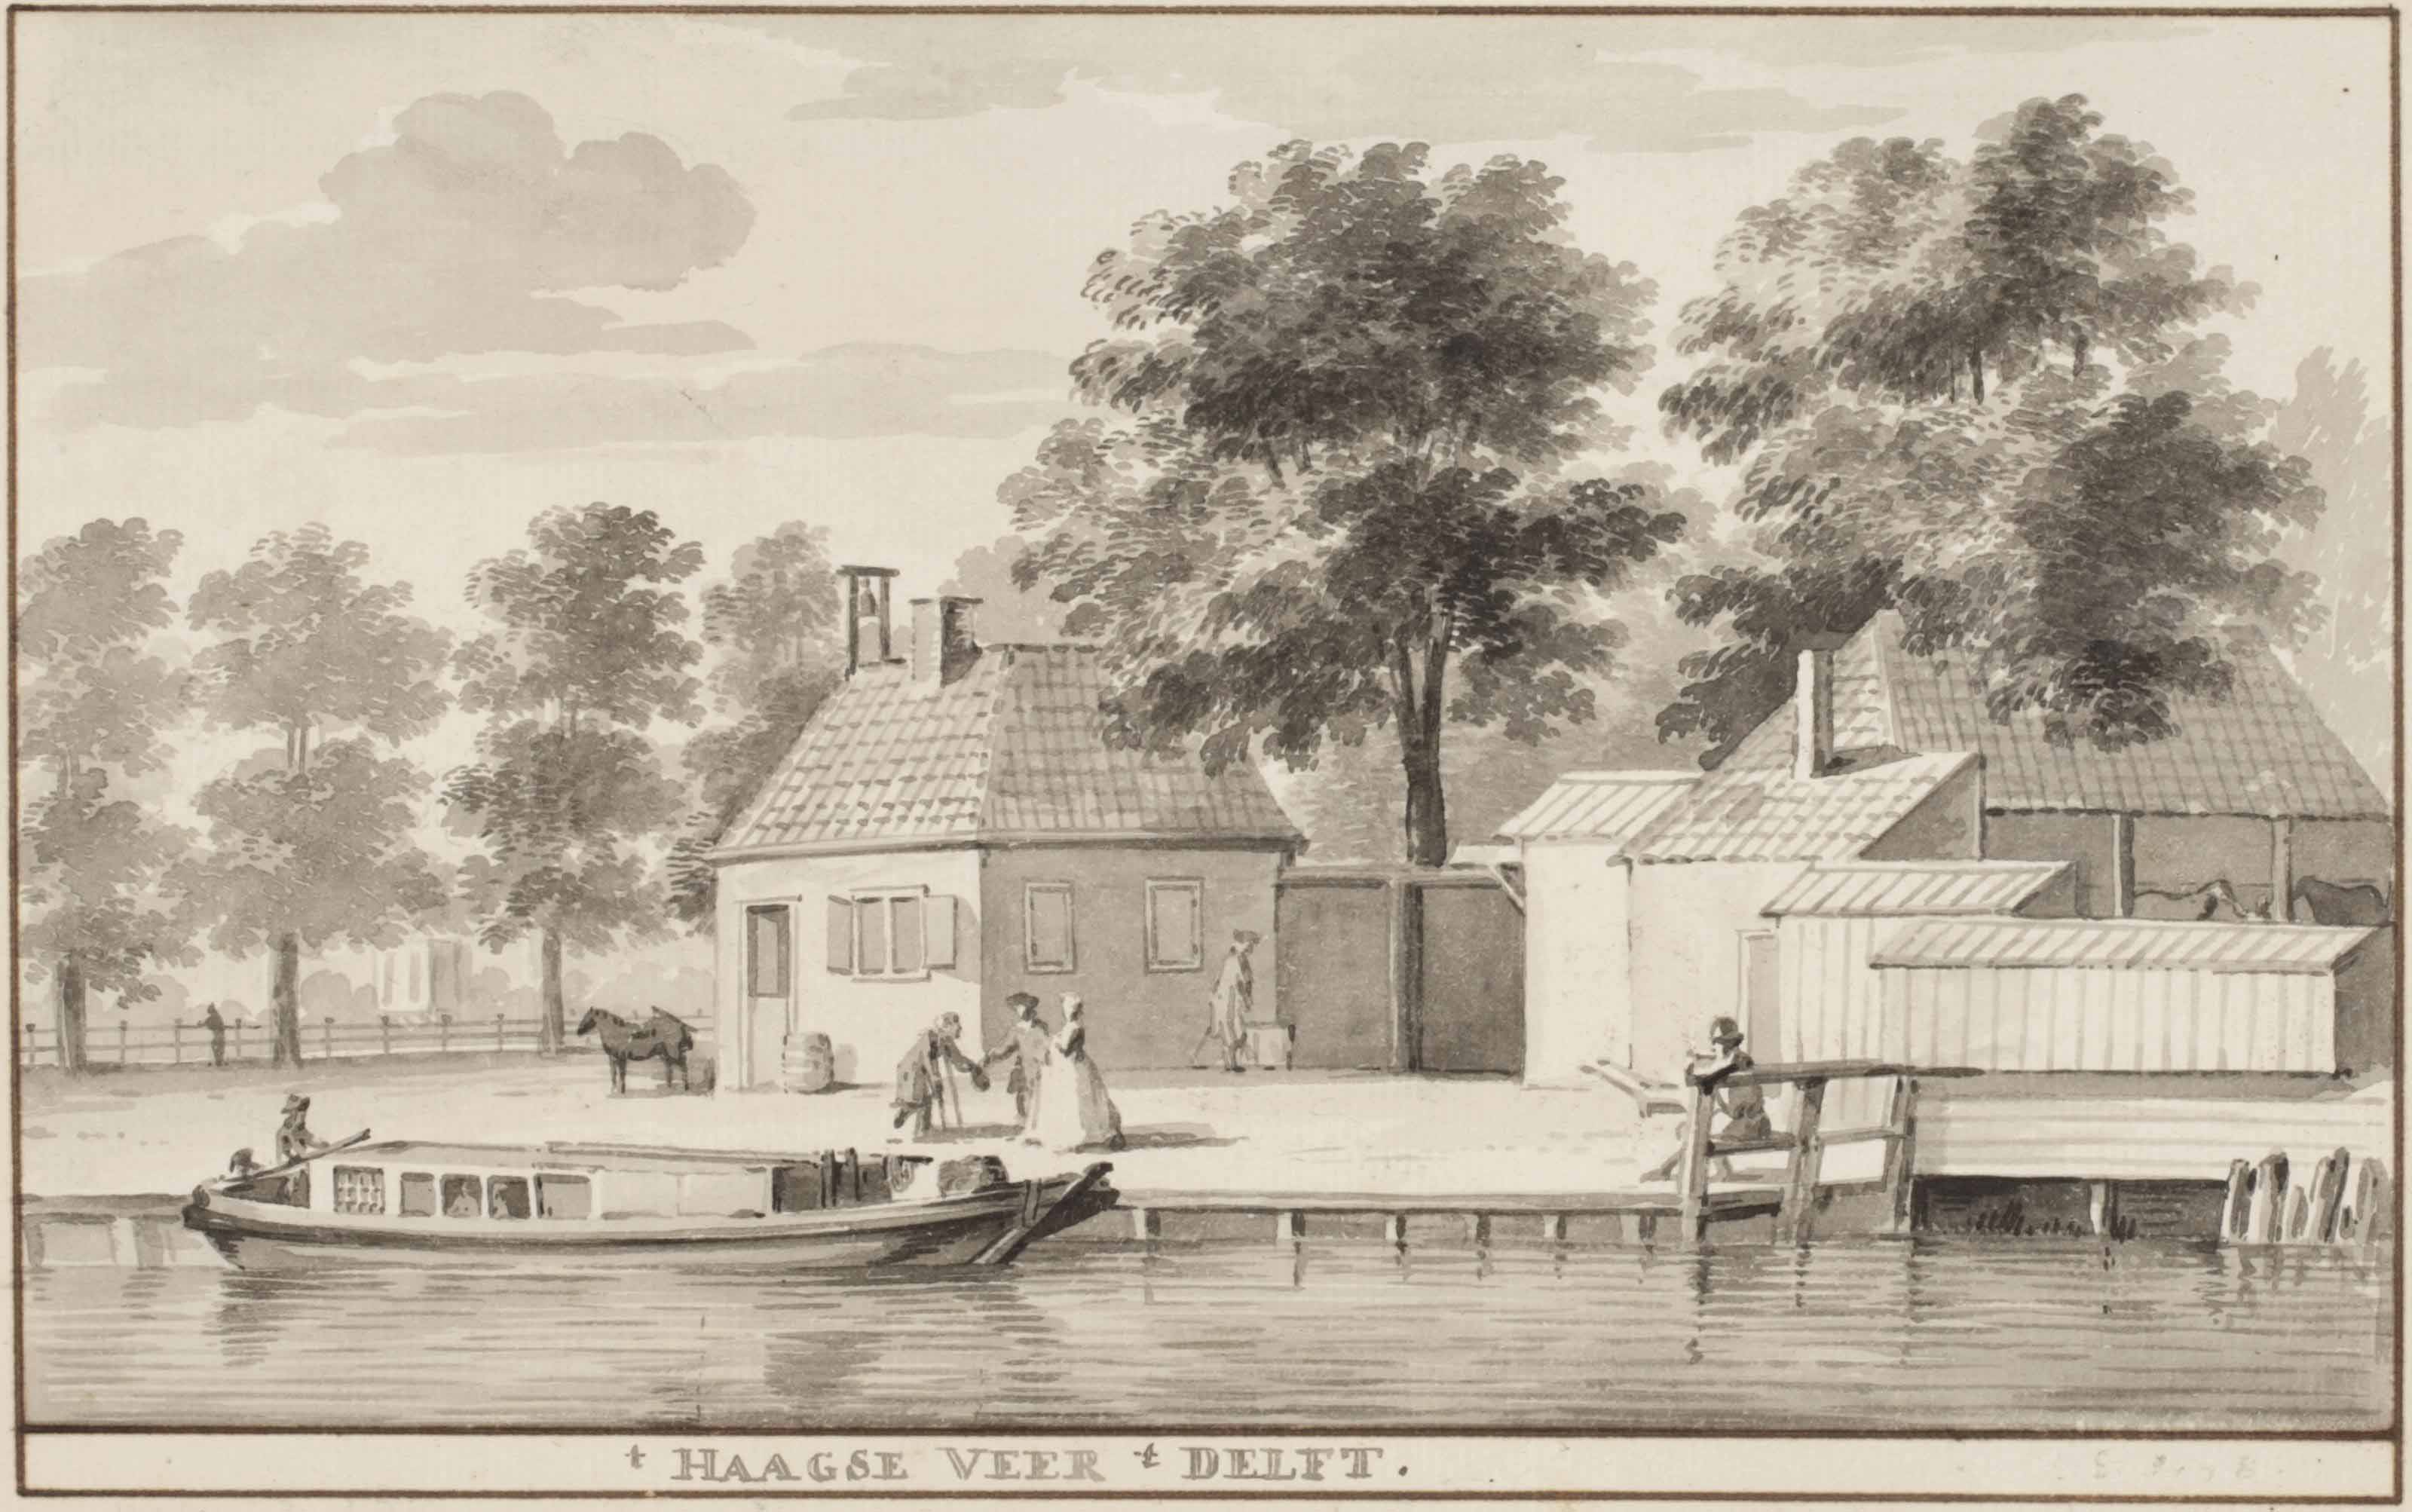 The moorings in Delft for the ferry to The Hague